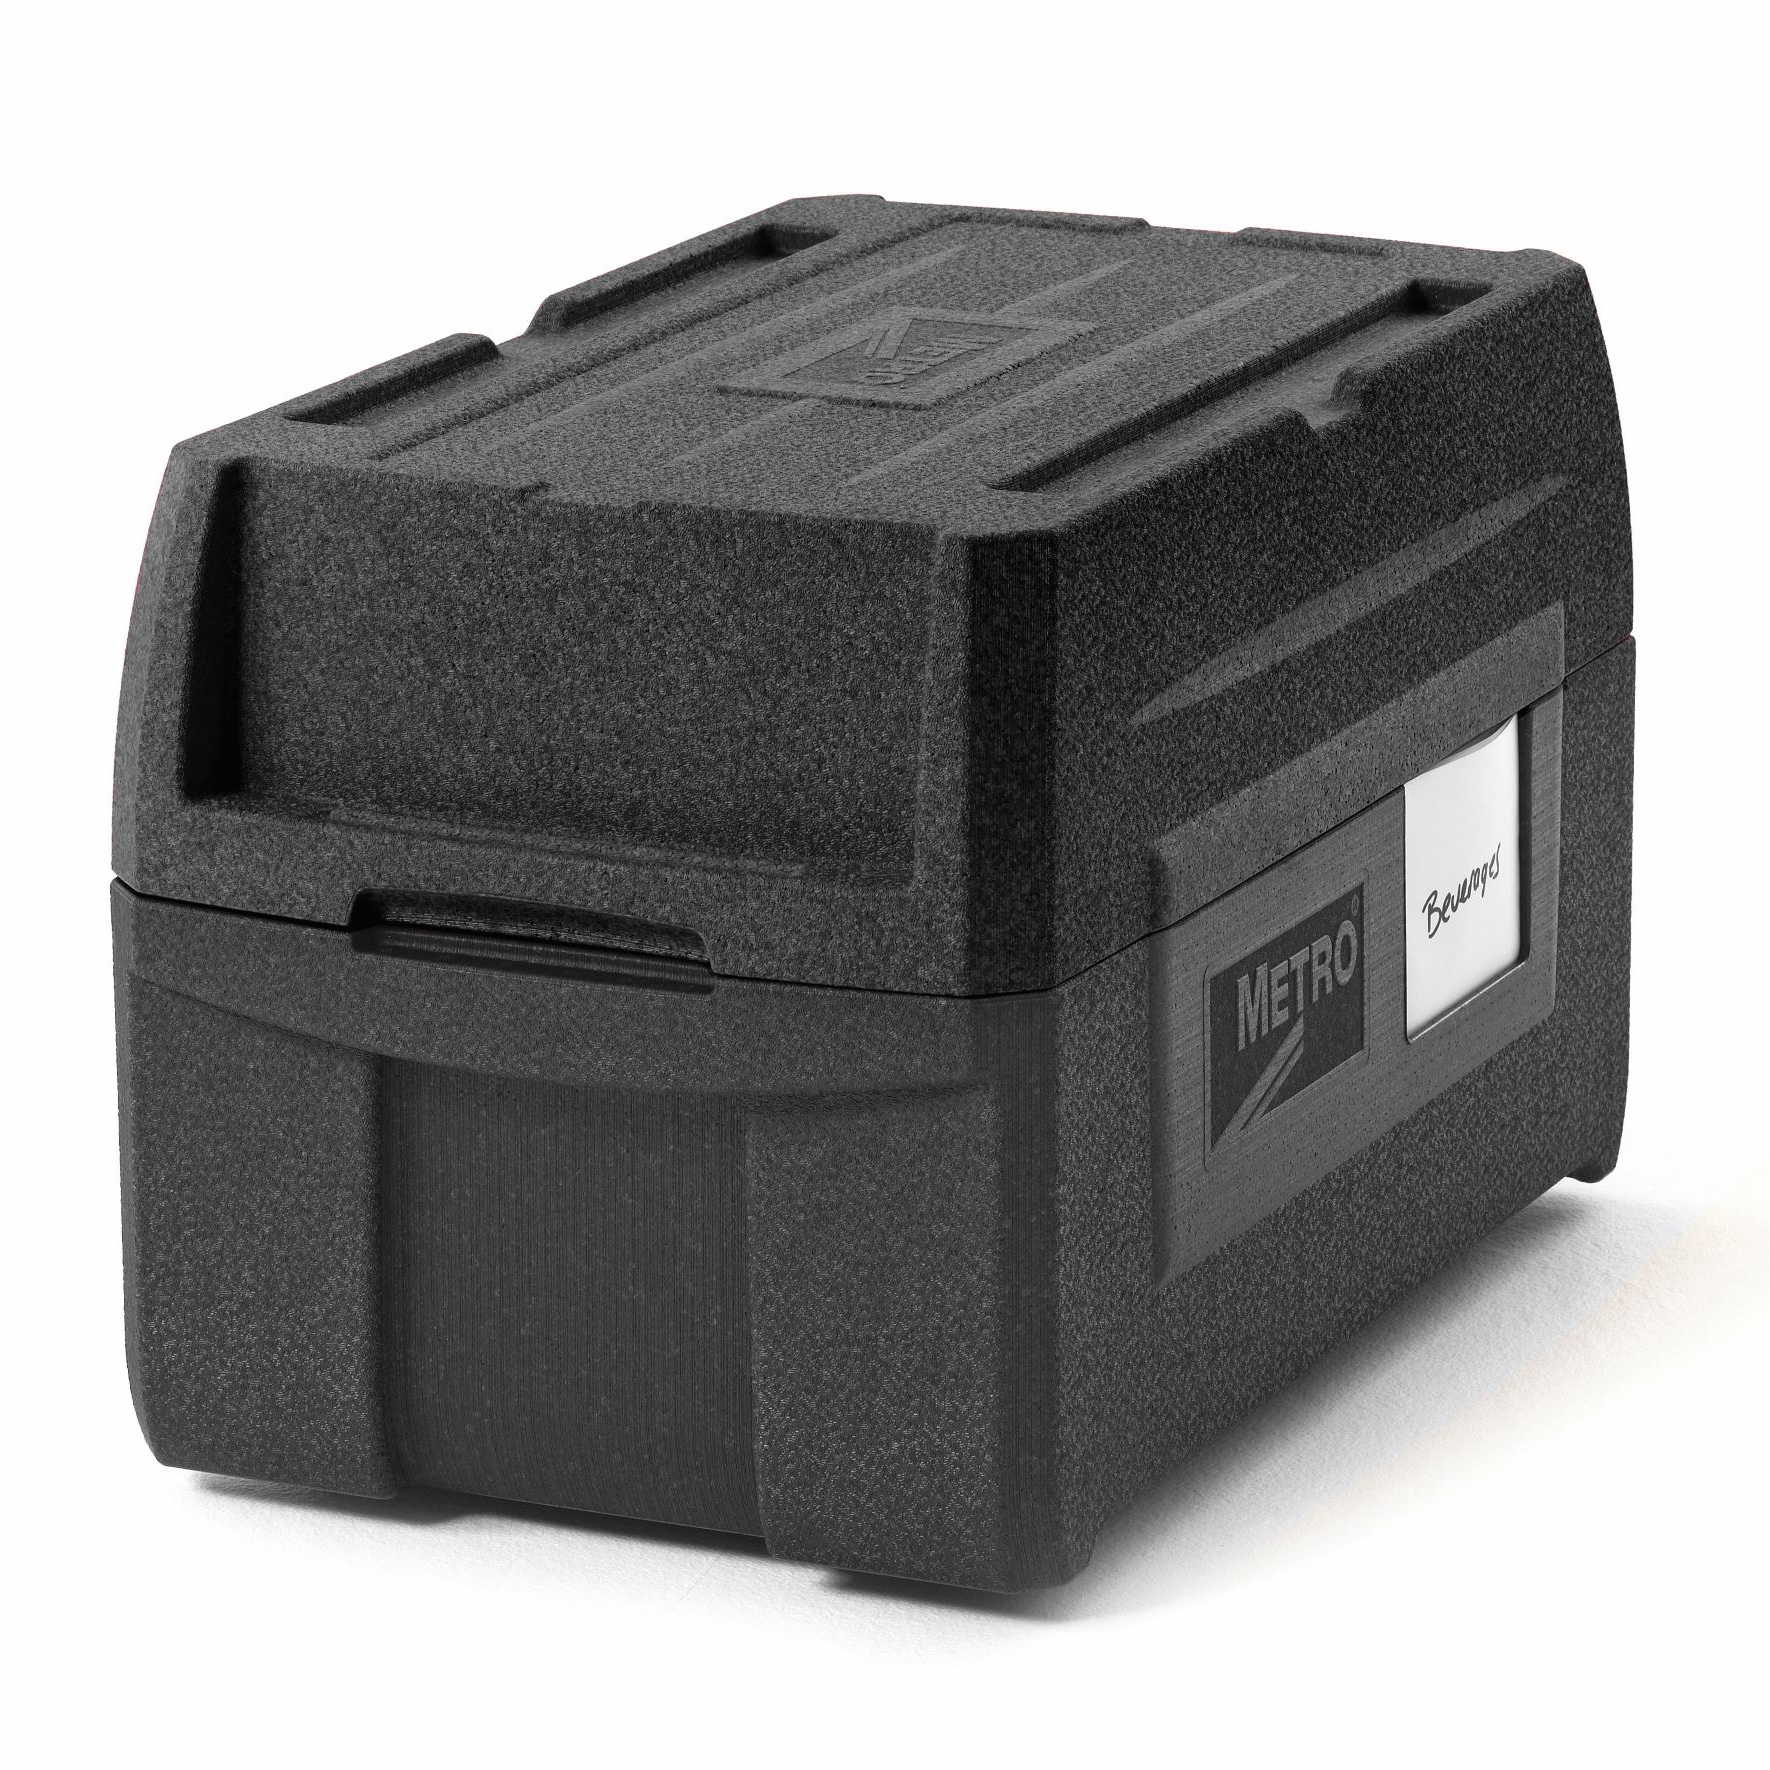 Metro ML180XL-BL food carrier, insulated plastic